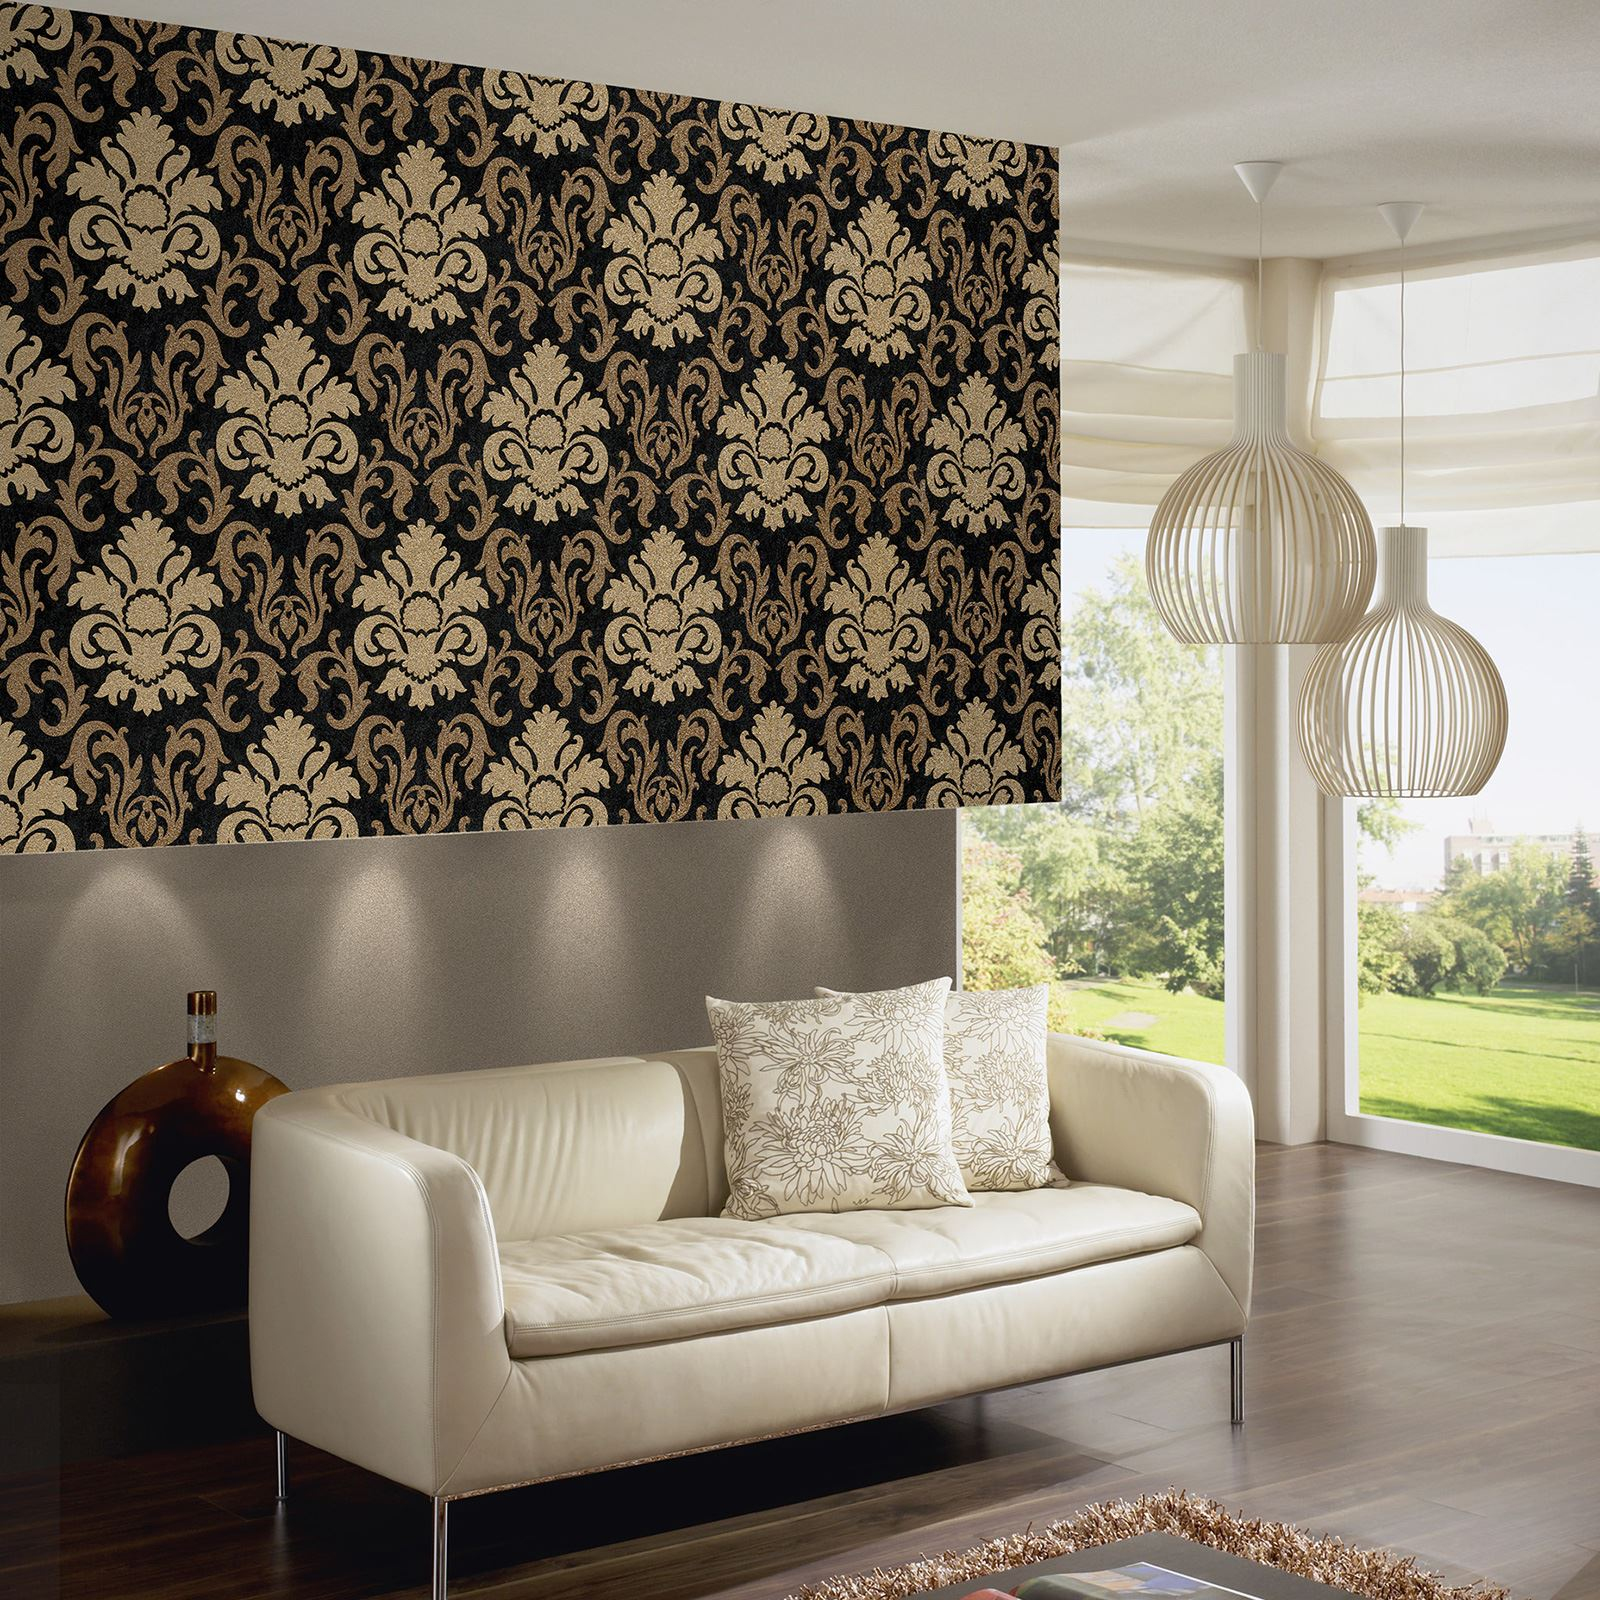 Carat Damask Glitter Wallpaper Gold Black 13343 90